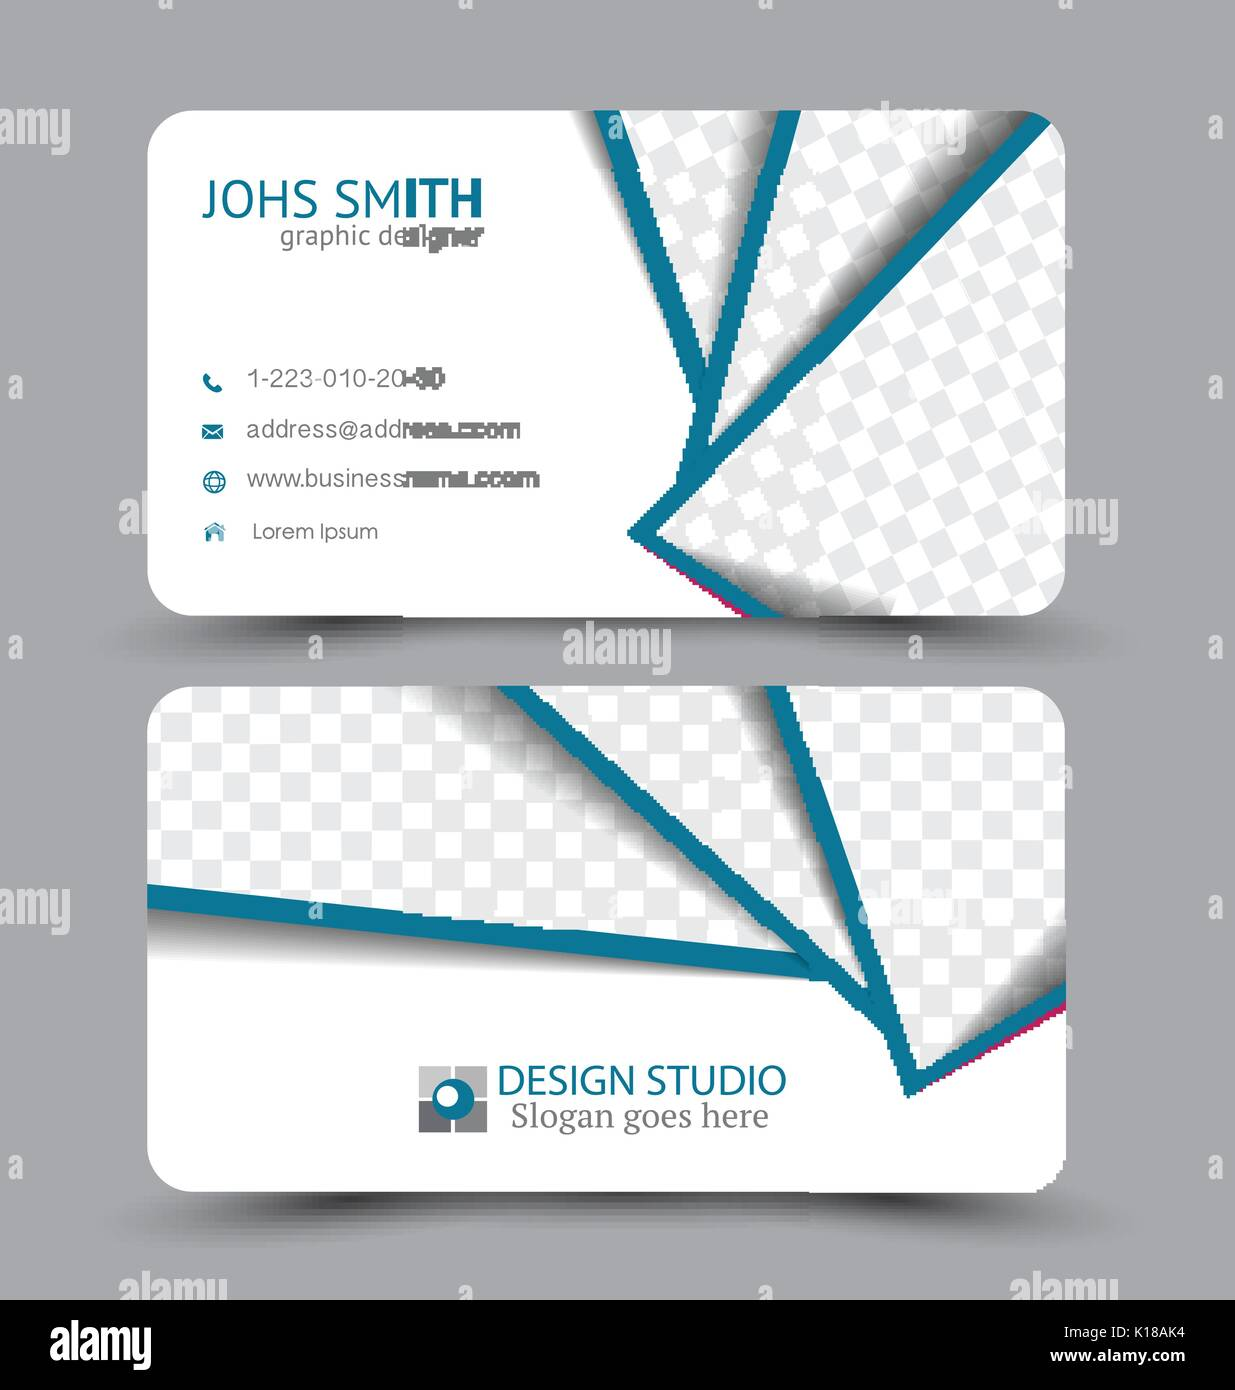 Business card design set template for company corporate style stock business card design set template for company corporate style vector illustration blue color reheart Image collections